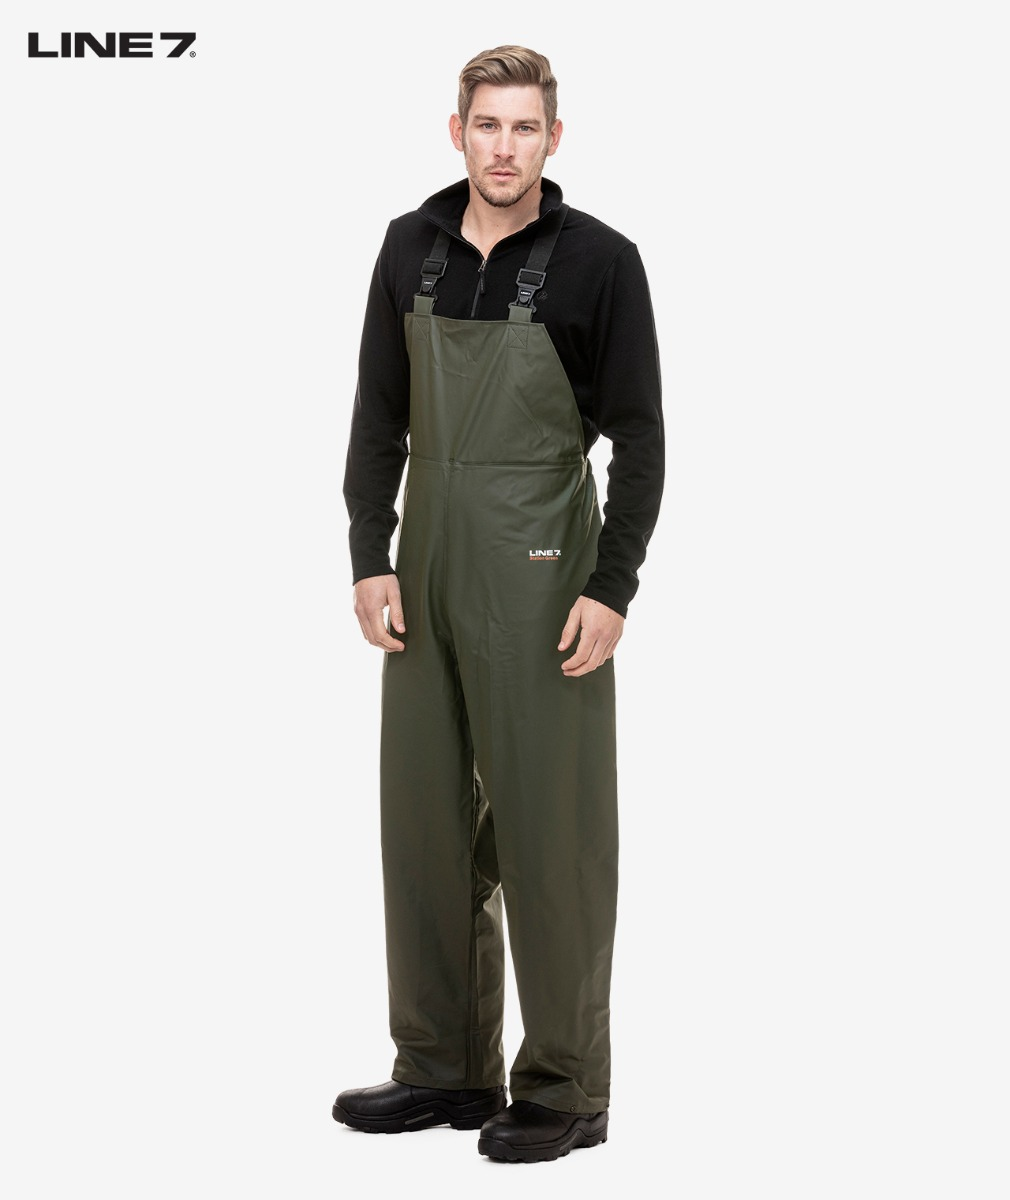 Line 7 Men's Station Green Waterproof Bib Trouser